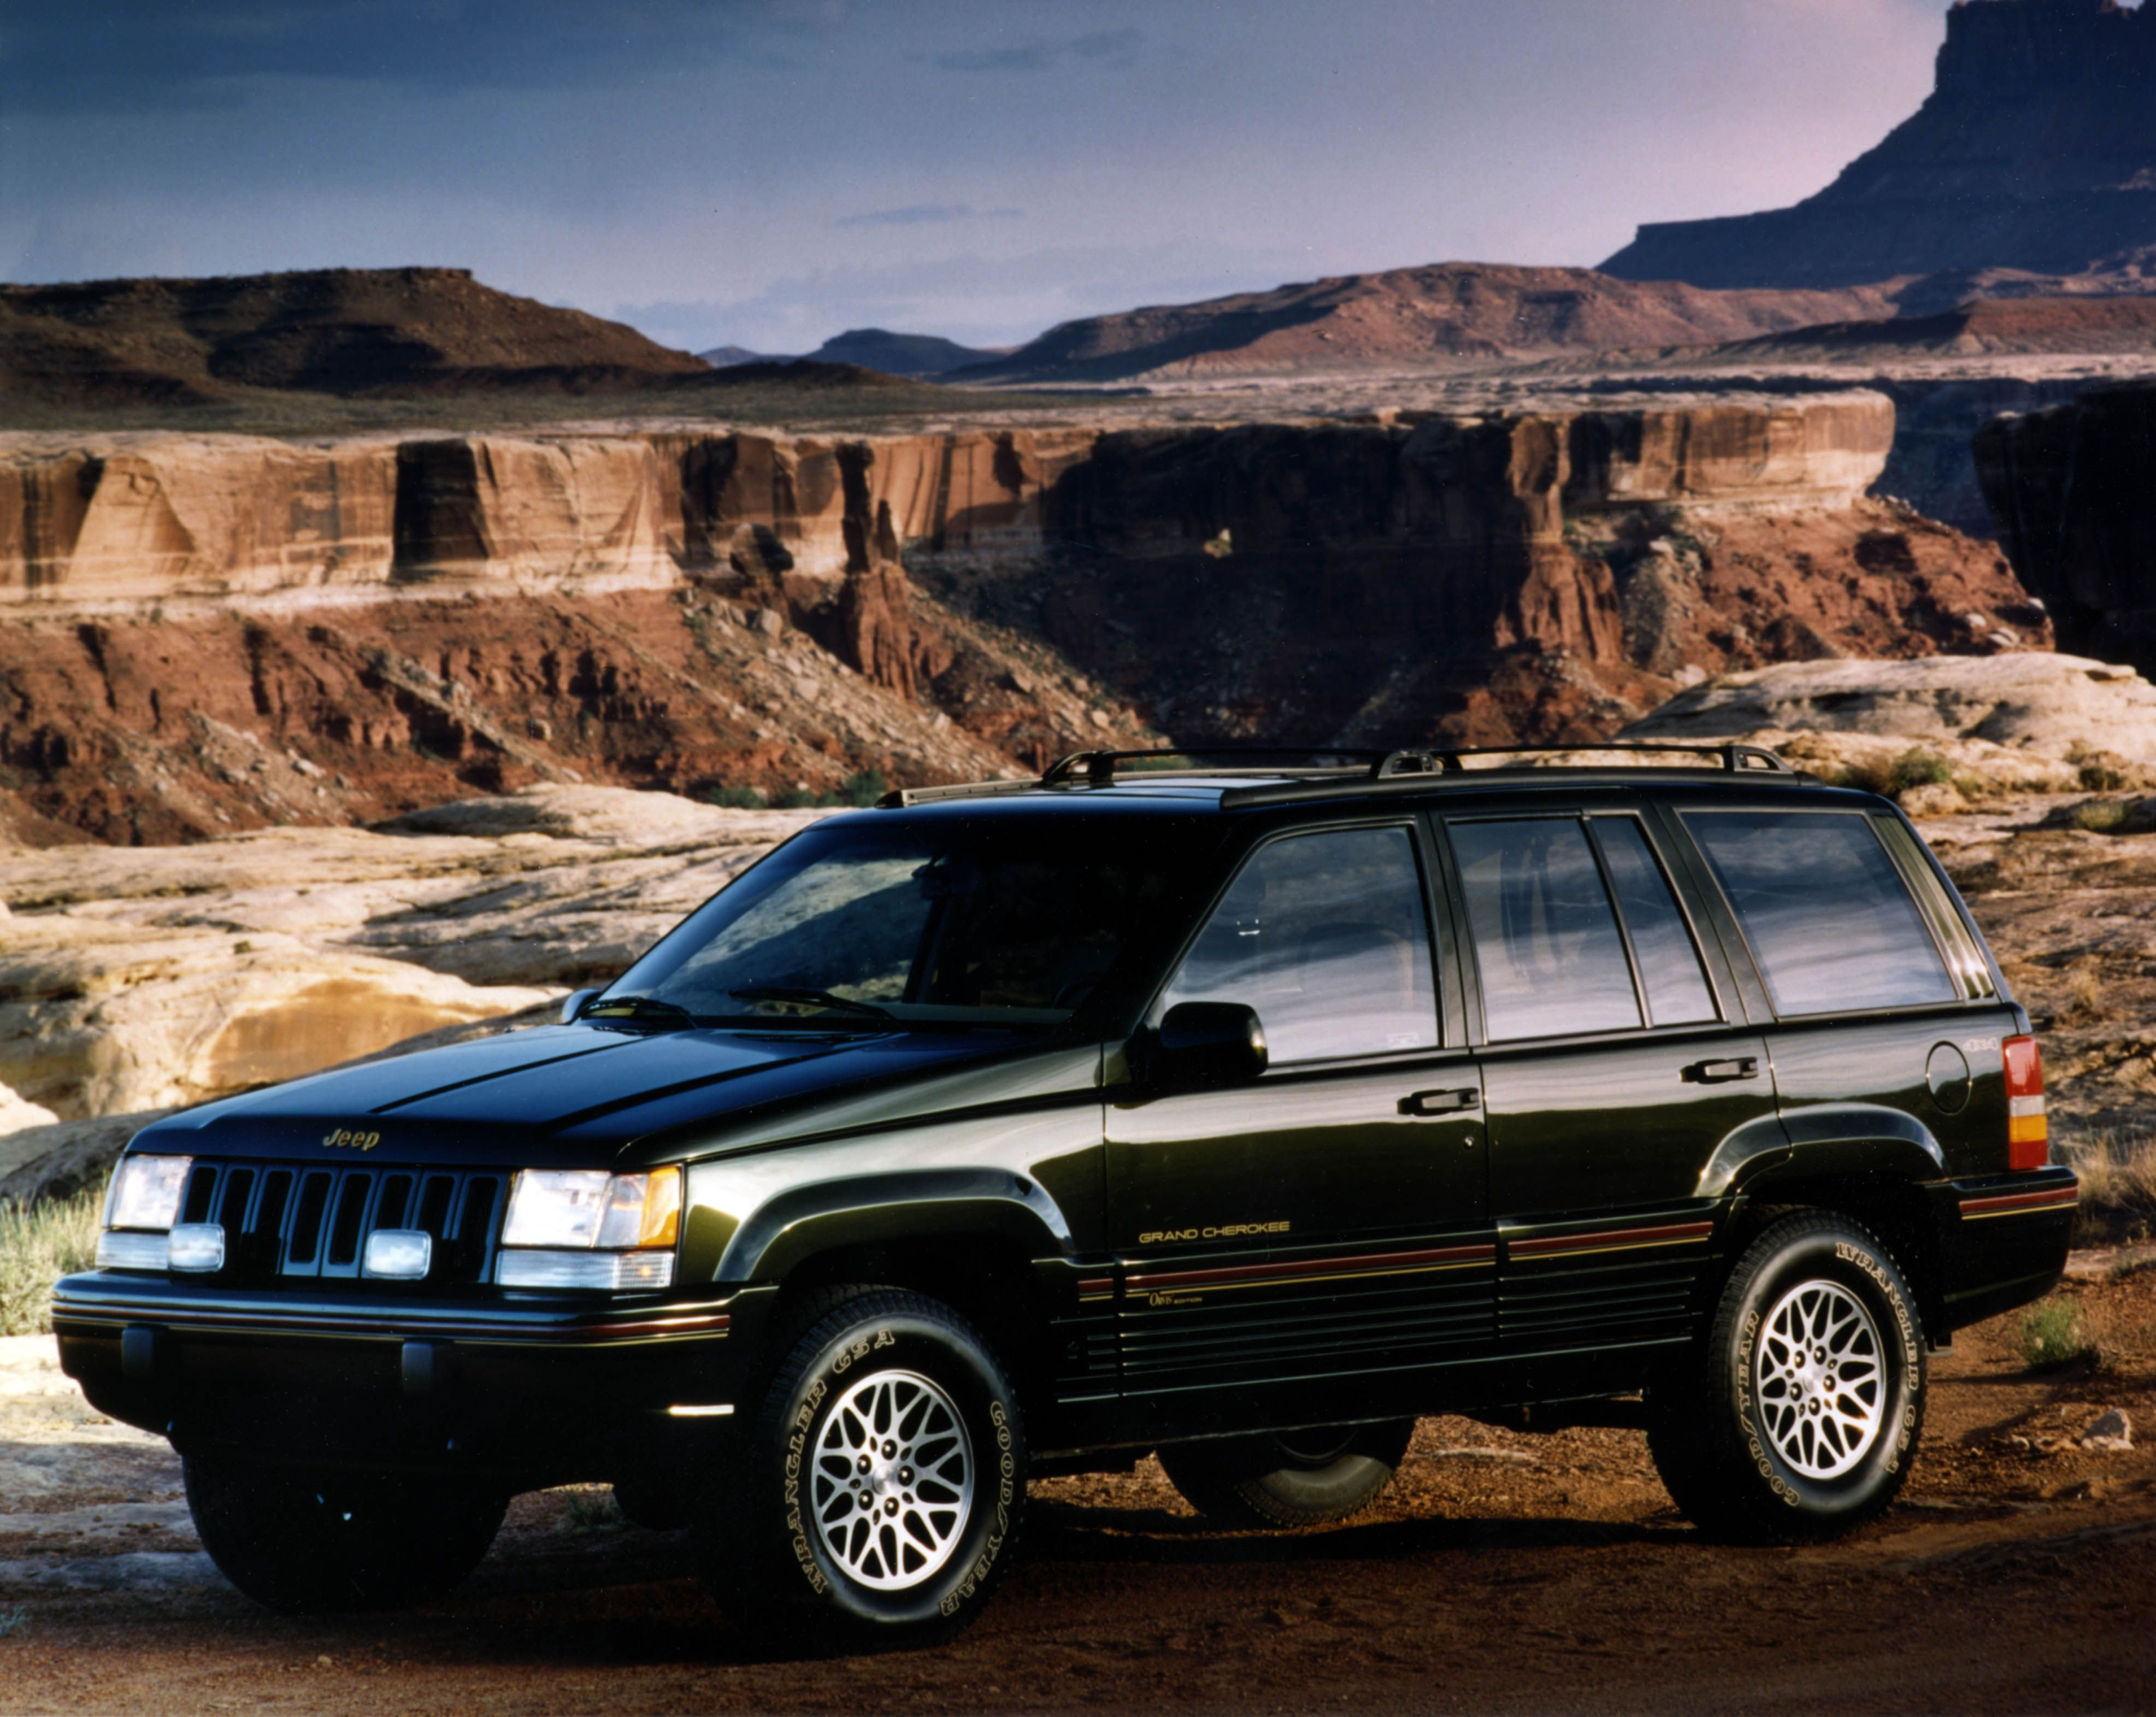 1993 1995 the jeep grand cherokee zj was all about providing an ideal luxury mid size suv. Black Bedroom Furniture Sets. Home Design Ideas